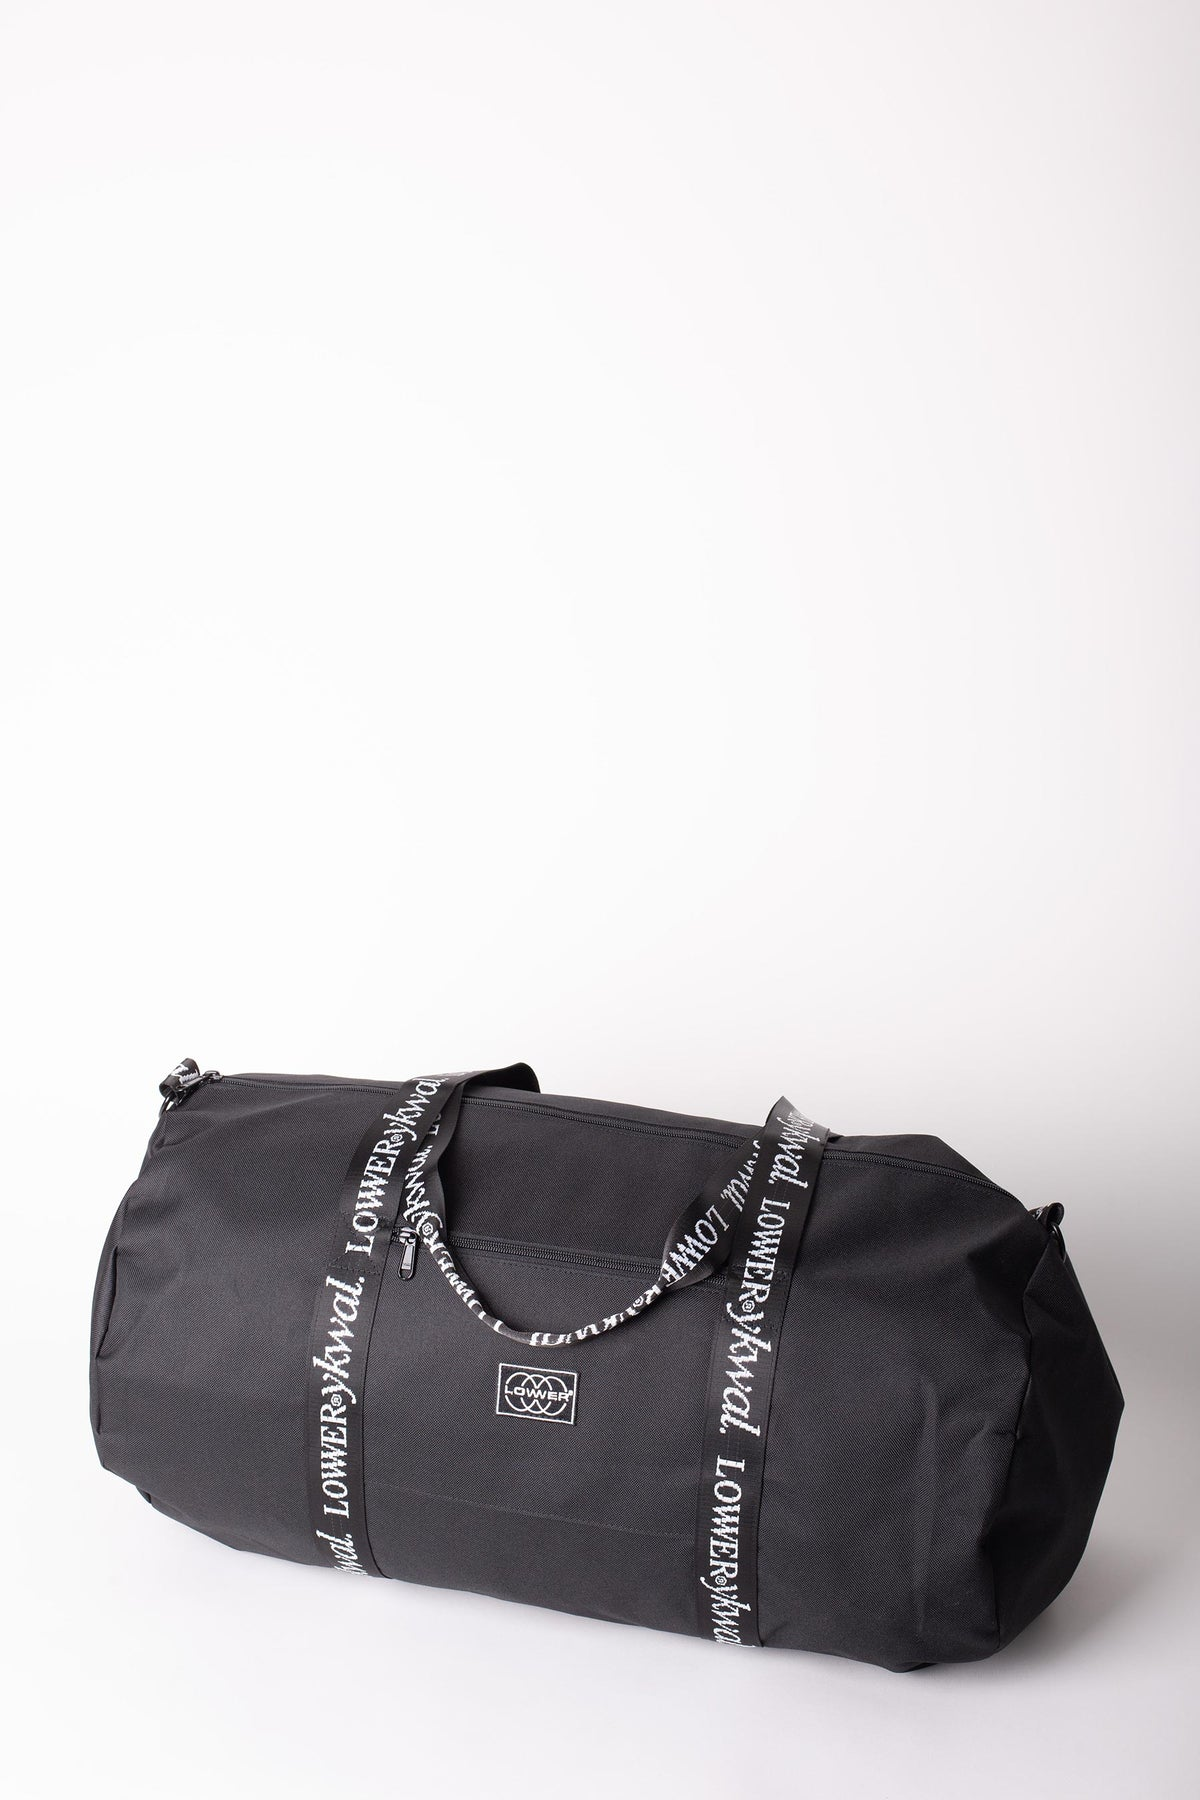 Trip Duffel Bag